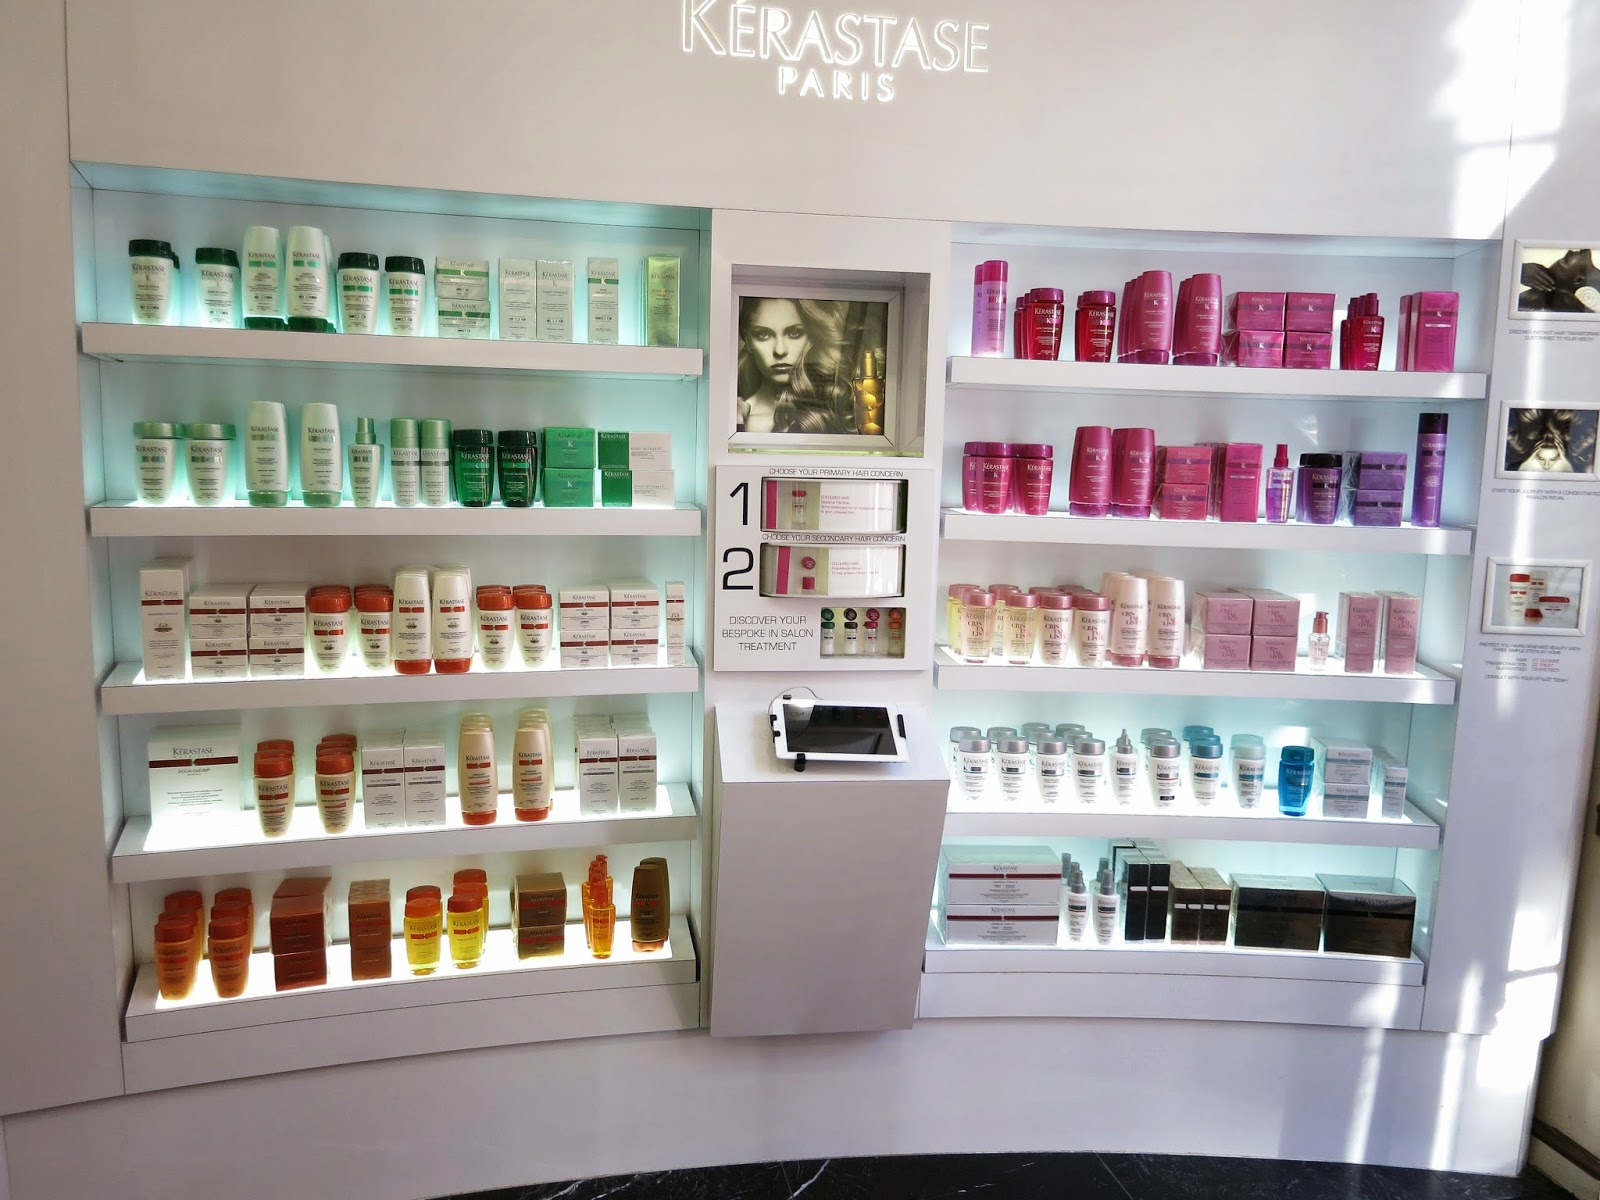 where to buy kerastase